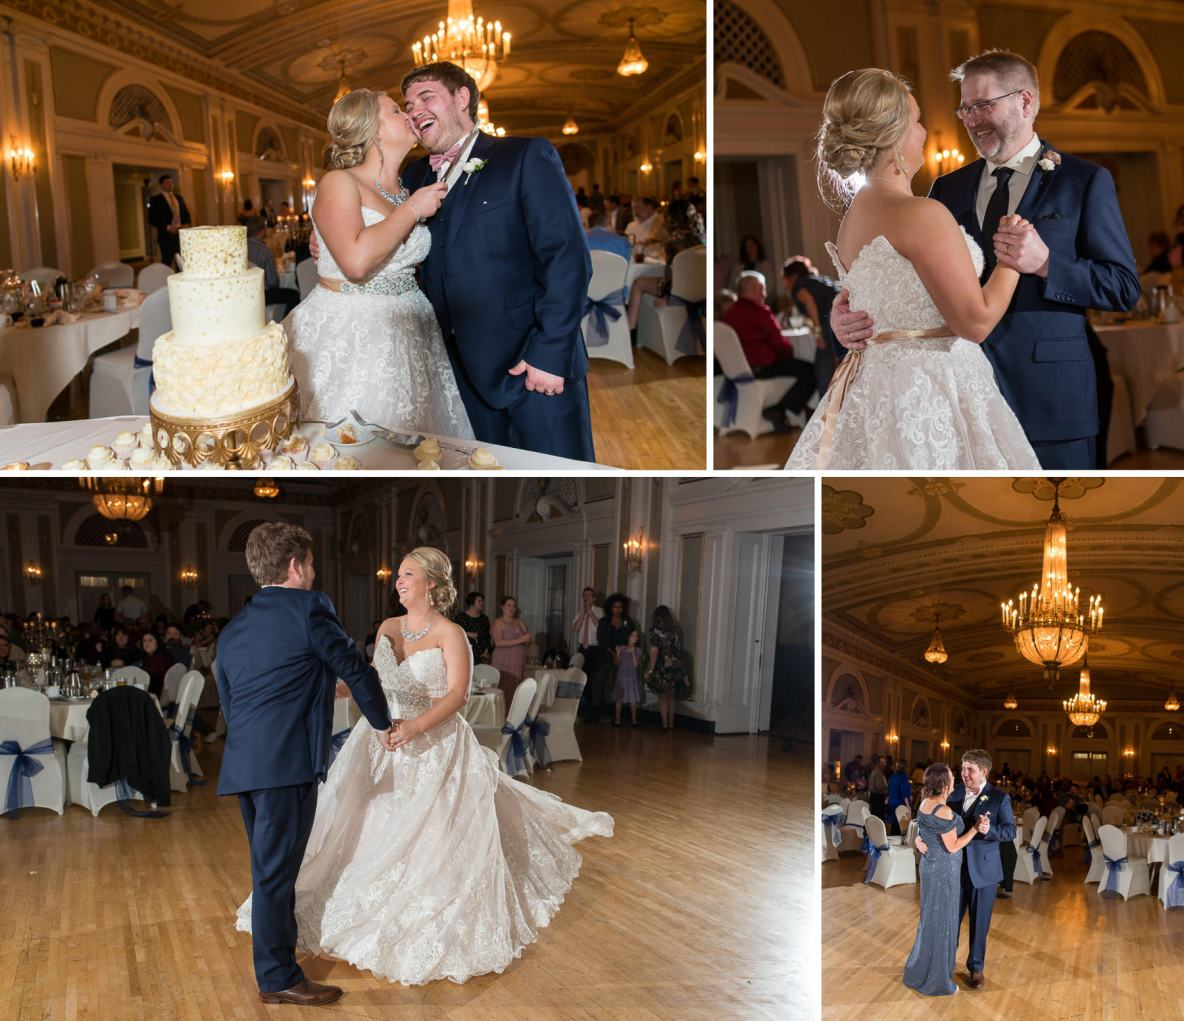 Abi and Alex's first dances.